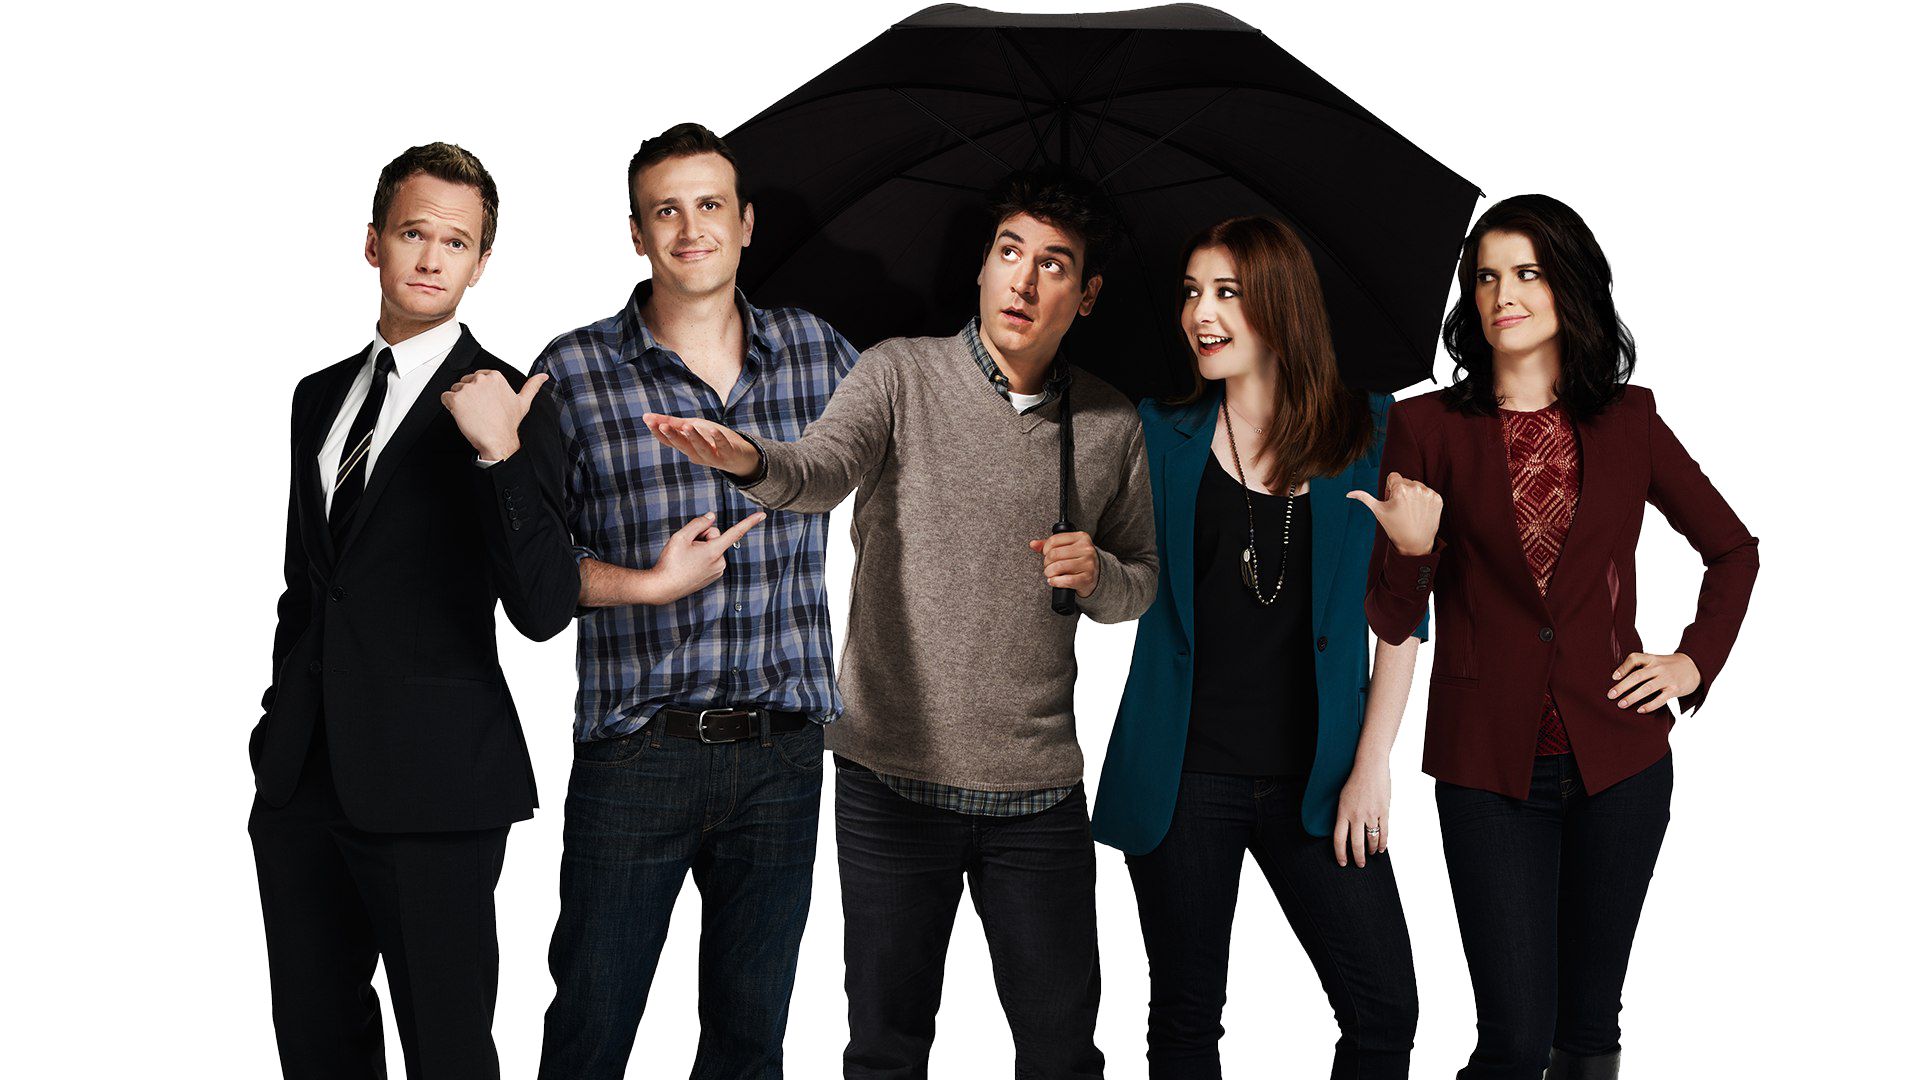 How I Met Your Mother Png - How I Met Your Mother PNG HD Image | PNG All